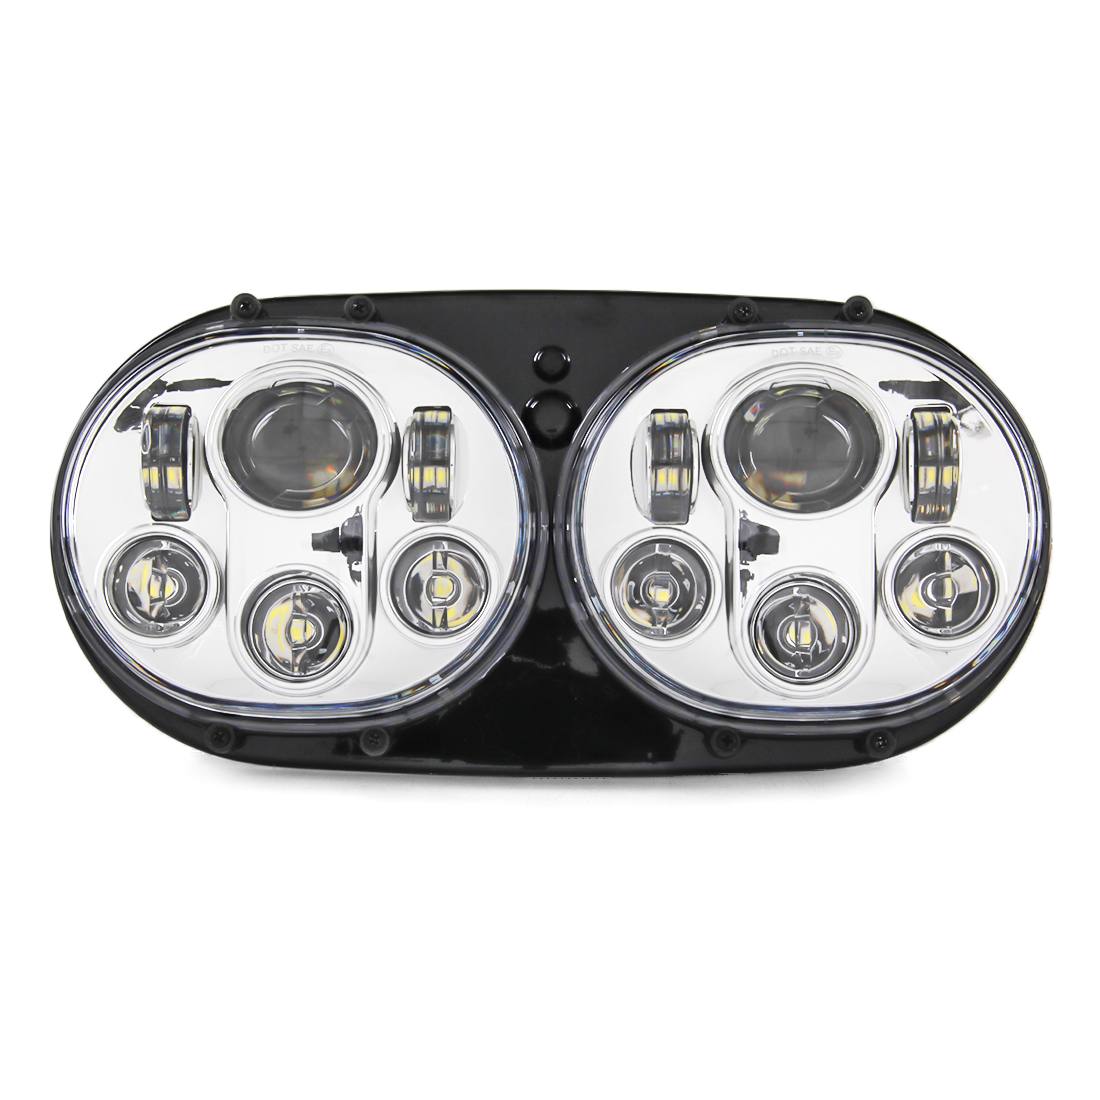 Chrome LED Dual Headlight 5.75 5-3/4 LED Daymaker Projector Hi/Low Beam Light for Harley Road Glide Ultra Road Glide FLTR/CVO